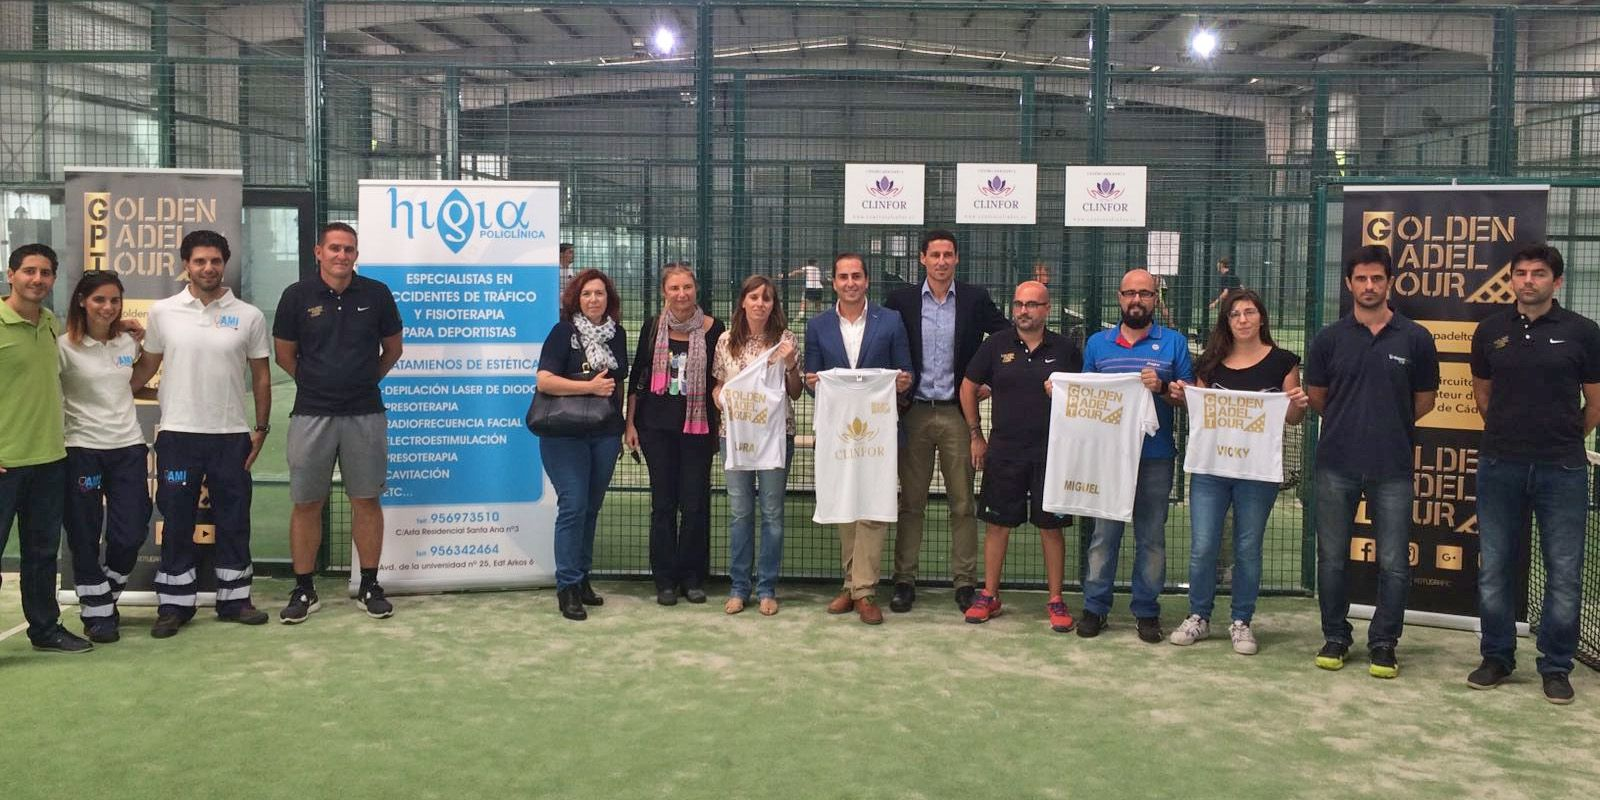 golden-padel-tour-jerez-2